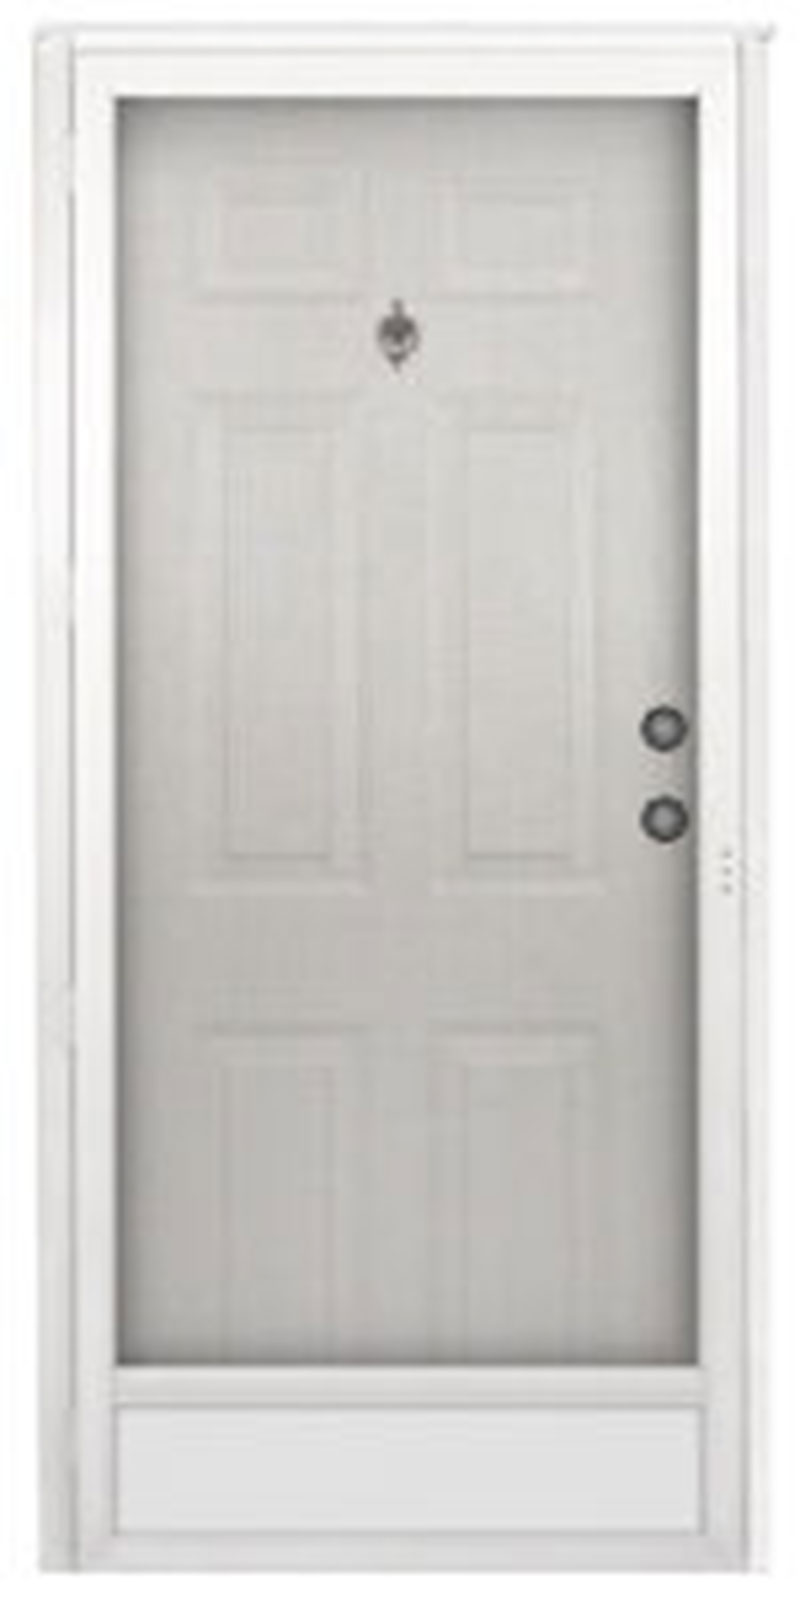 3. Combination Mobile Home Exterior Door with Full View Storm